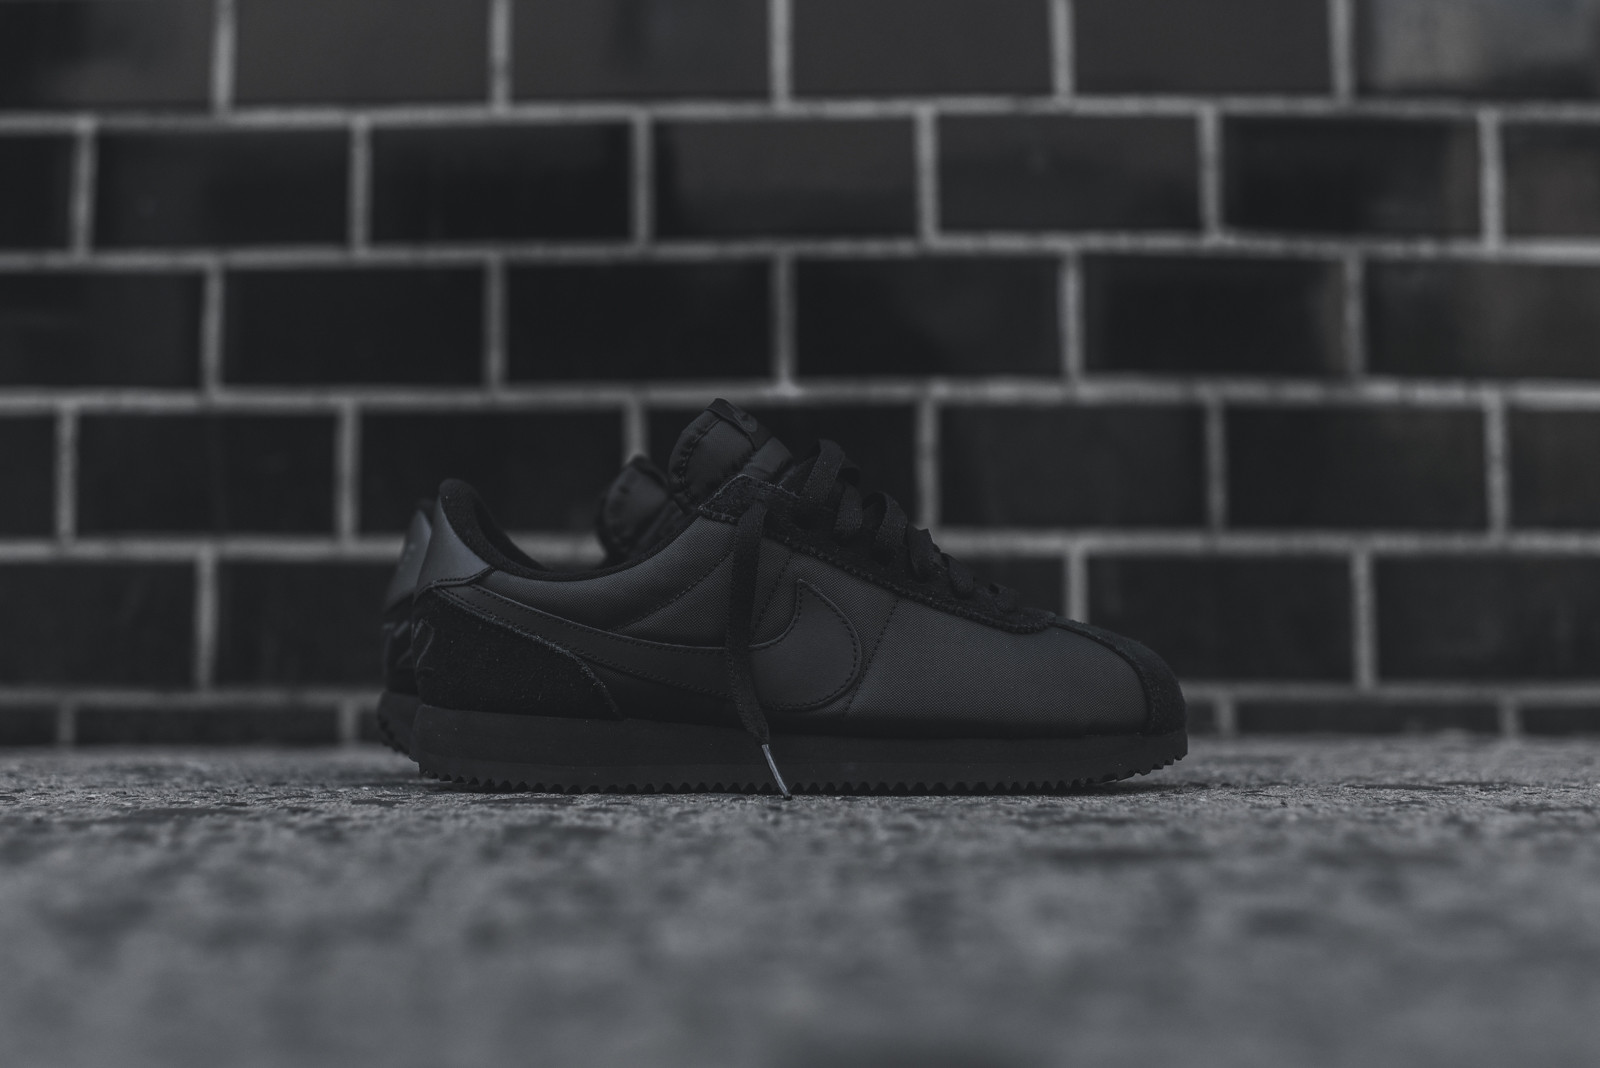 quality design eaf7f 736c1 Who Picked Up The Nike Cortez 1972 Triple Black ...